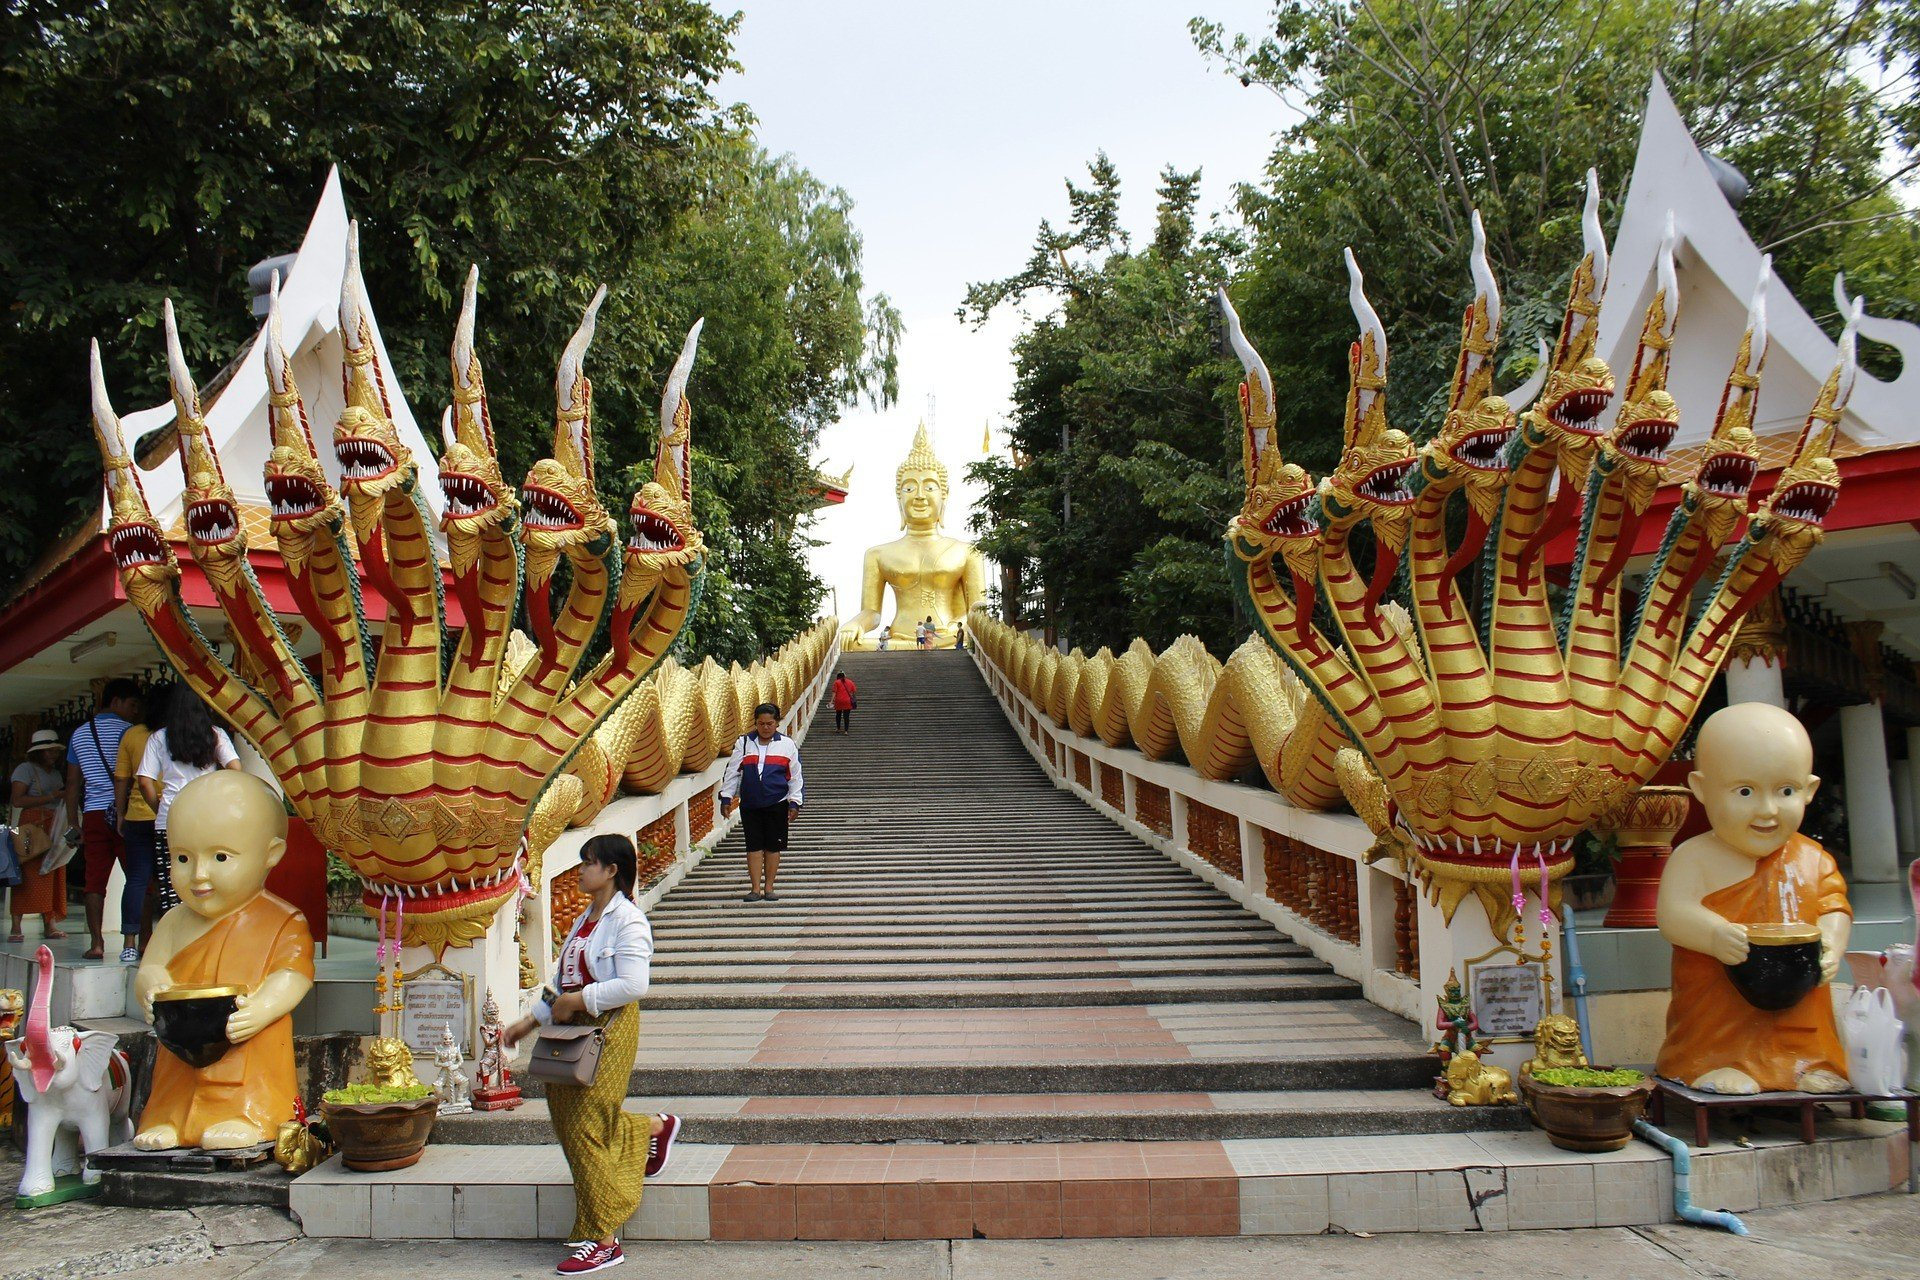 Wat Phra Yai in Pattaya